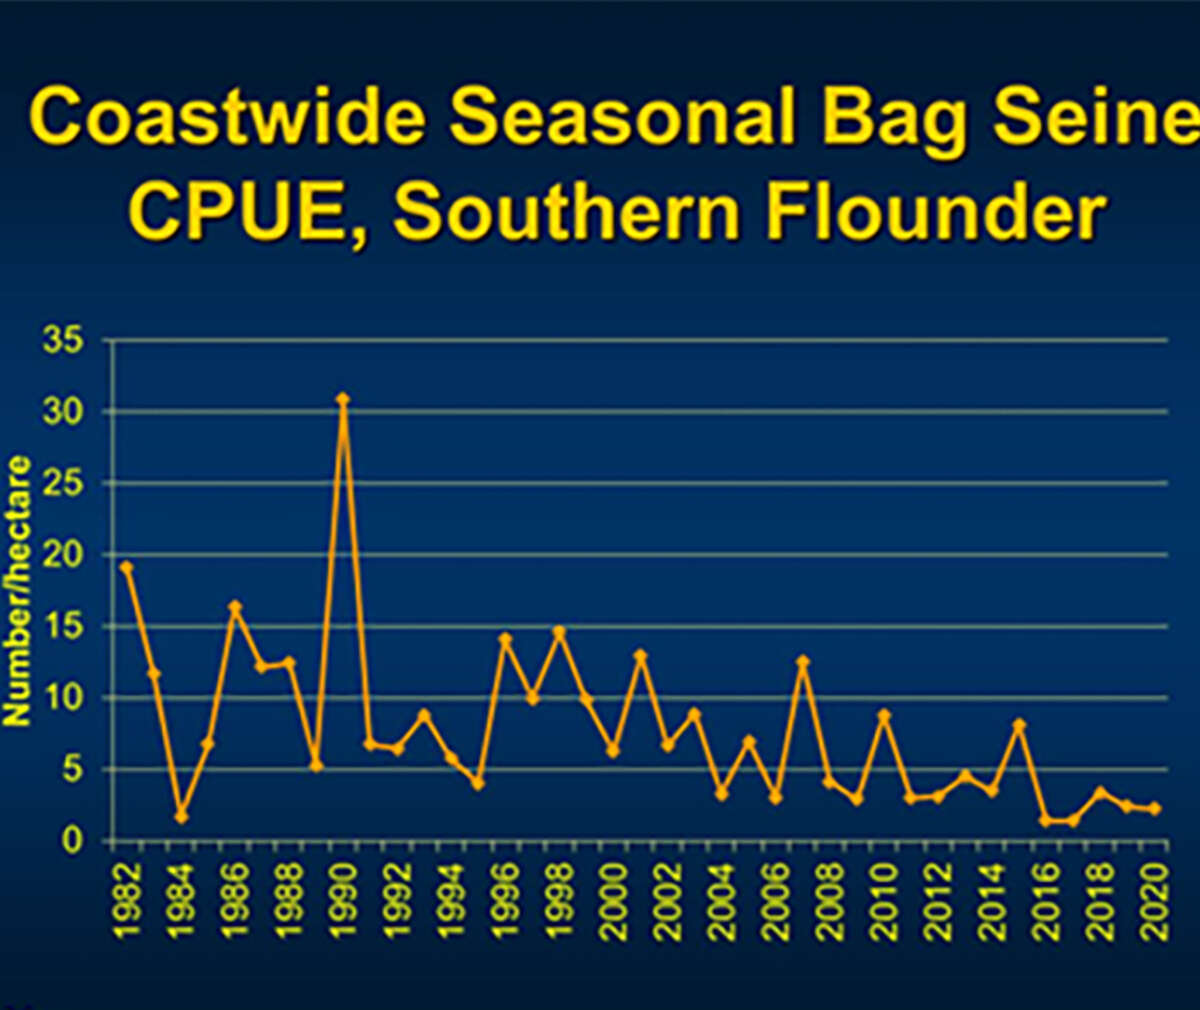 A look at bag seine data from 2020 shows the decline in flounder recruitment over the years.